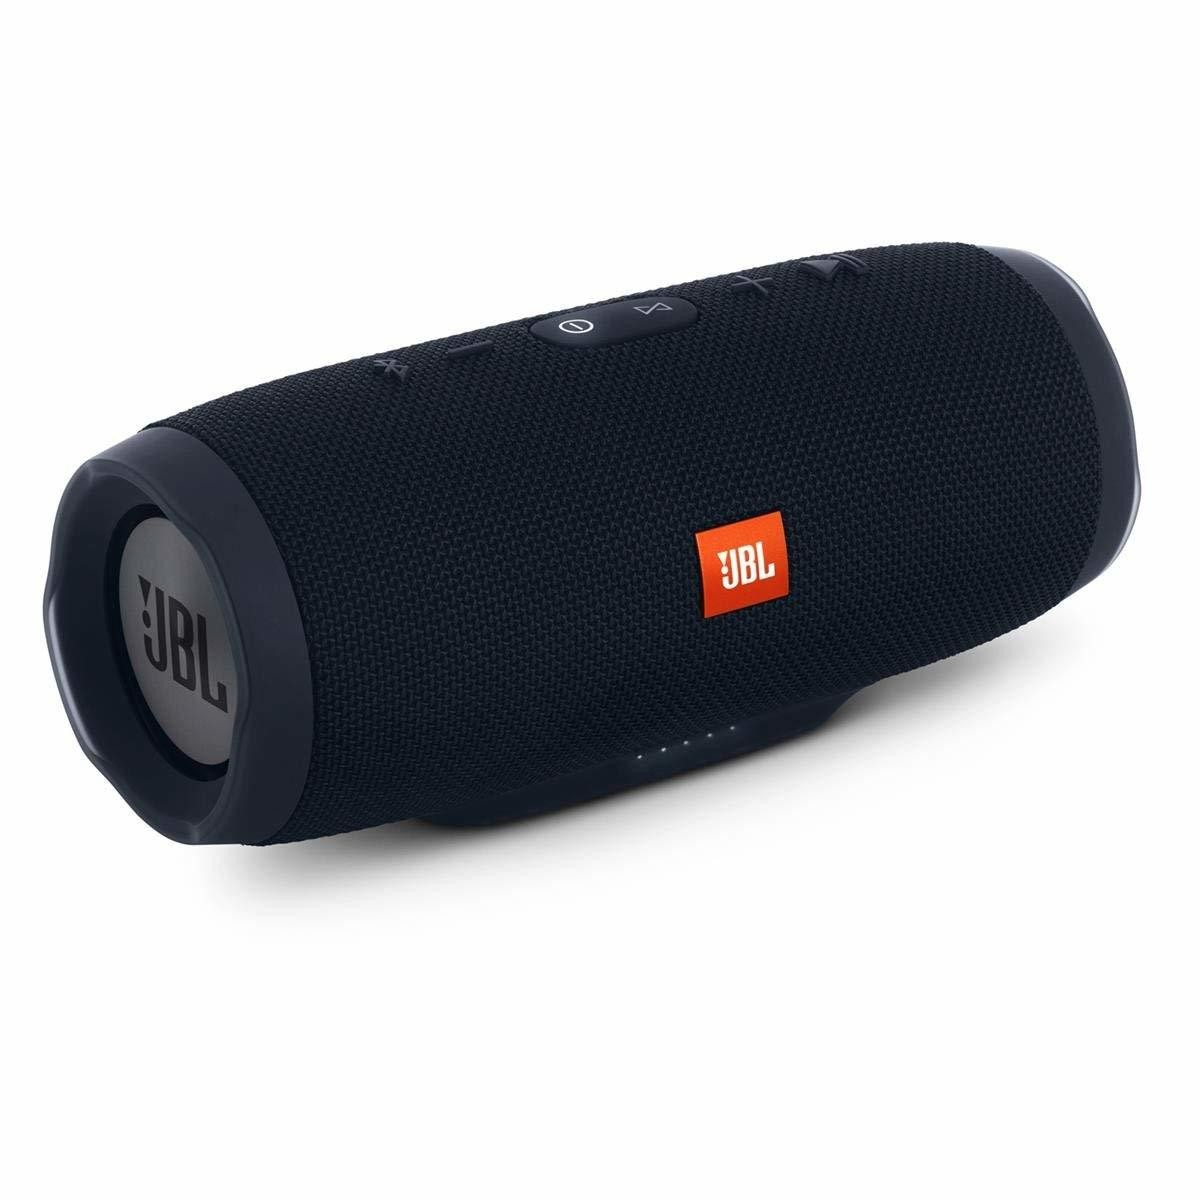 JBL Charge 3 Waterproof Bluetooth Speaker -Black (Certified Refurbished) -